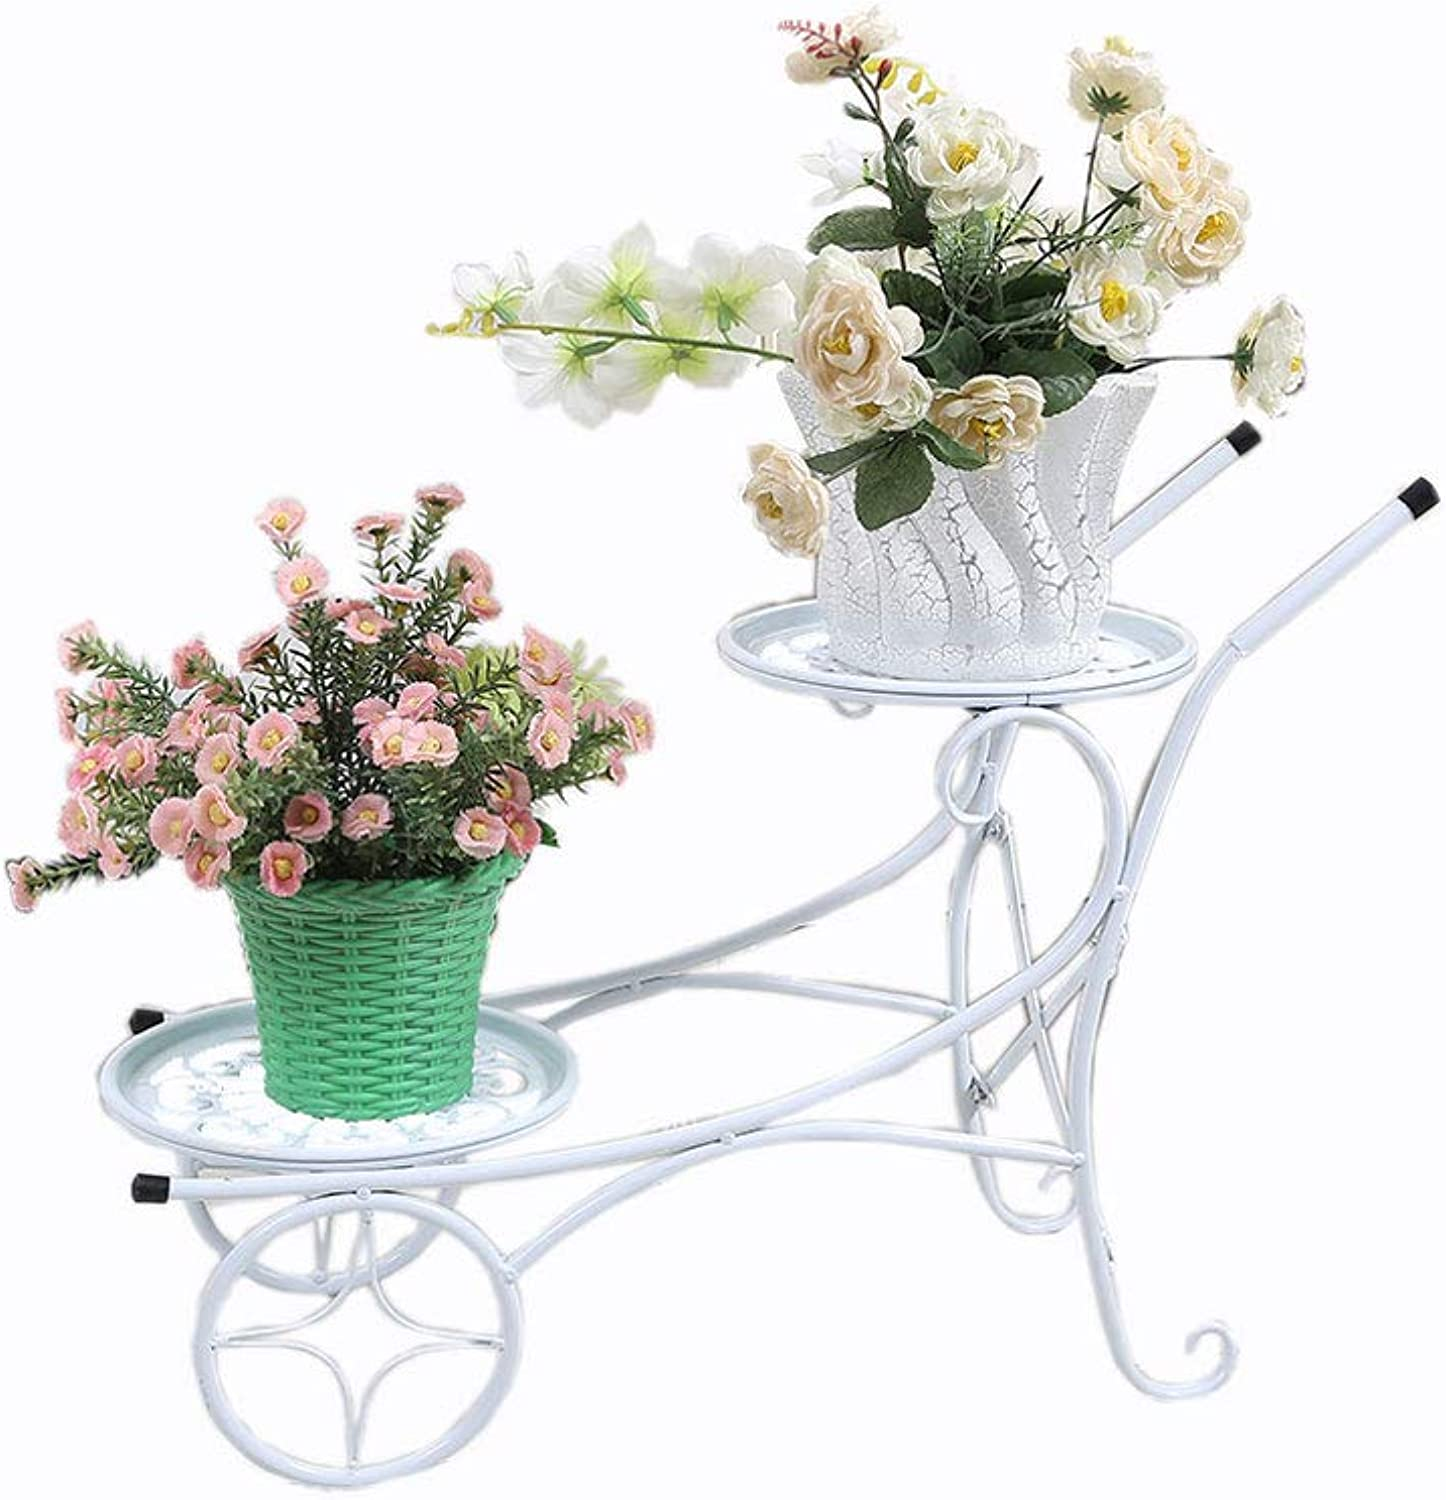 WYNZYHJ Flower Stand, European Multi-Functional Multi-Layer Plant Rack Wrought Iron Living Room Balcony Floor Pot Rack (color   White)